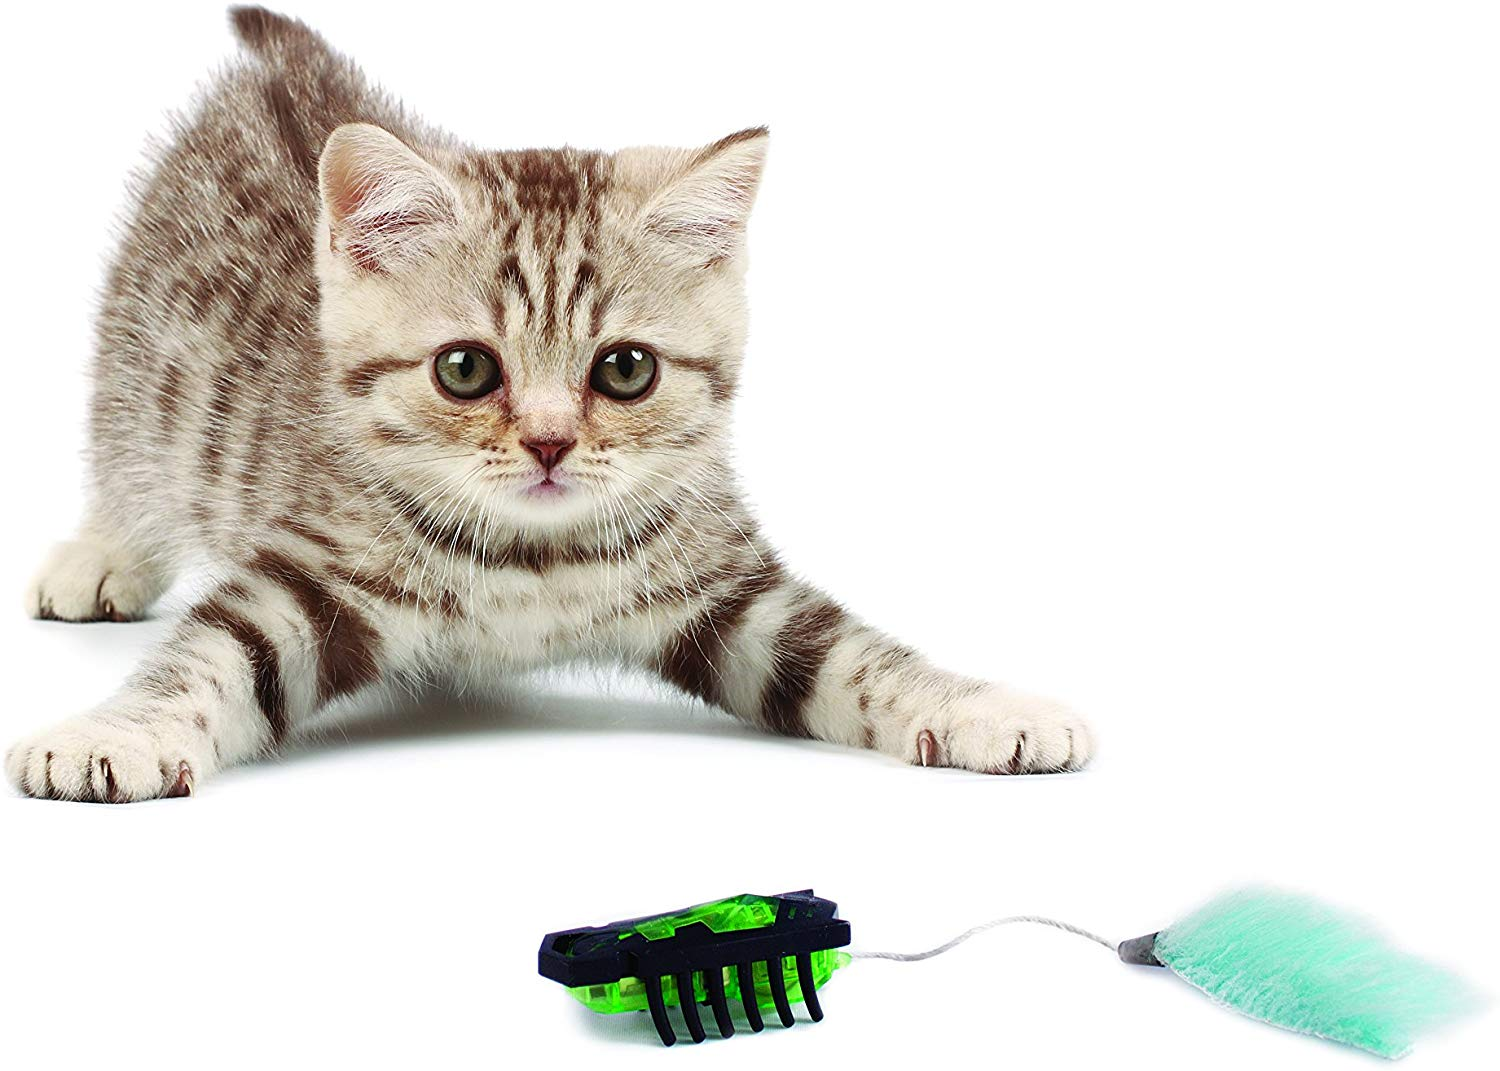 3 Top Robot Toy For Cats To Keep Them Entertained For a Long time